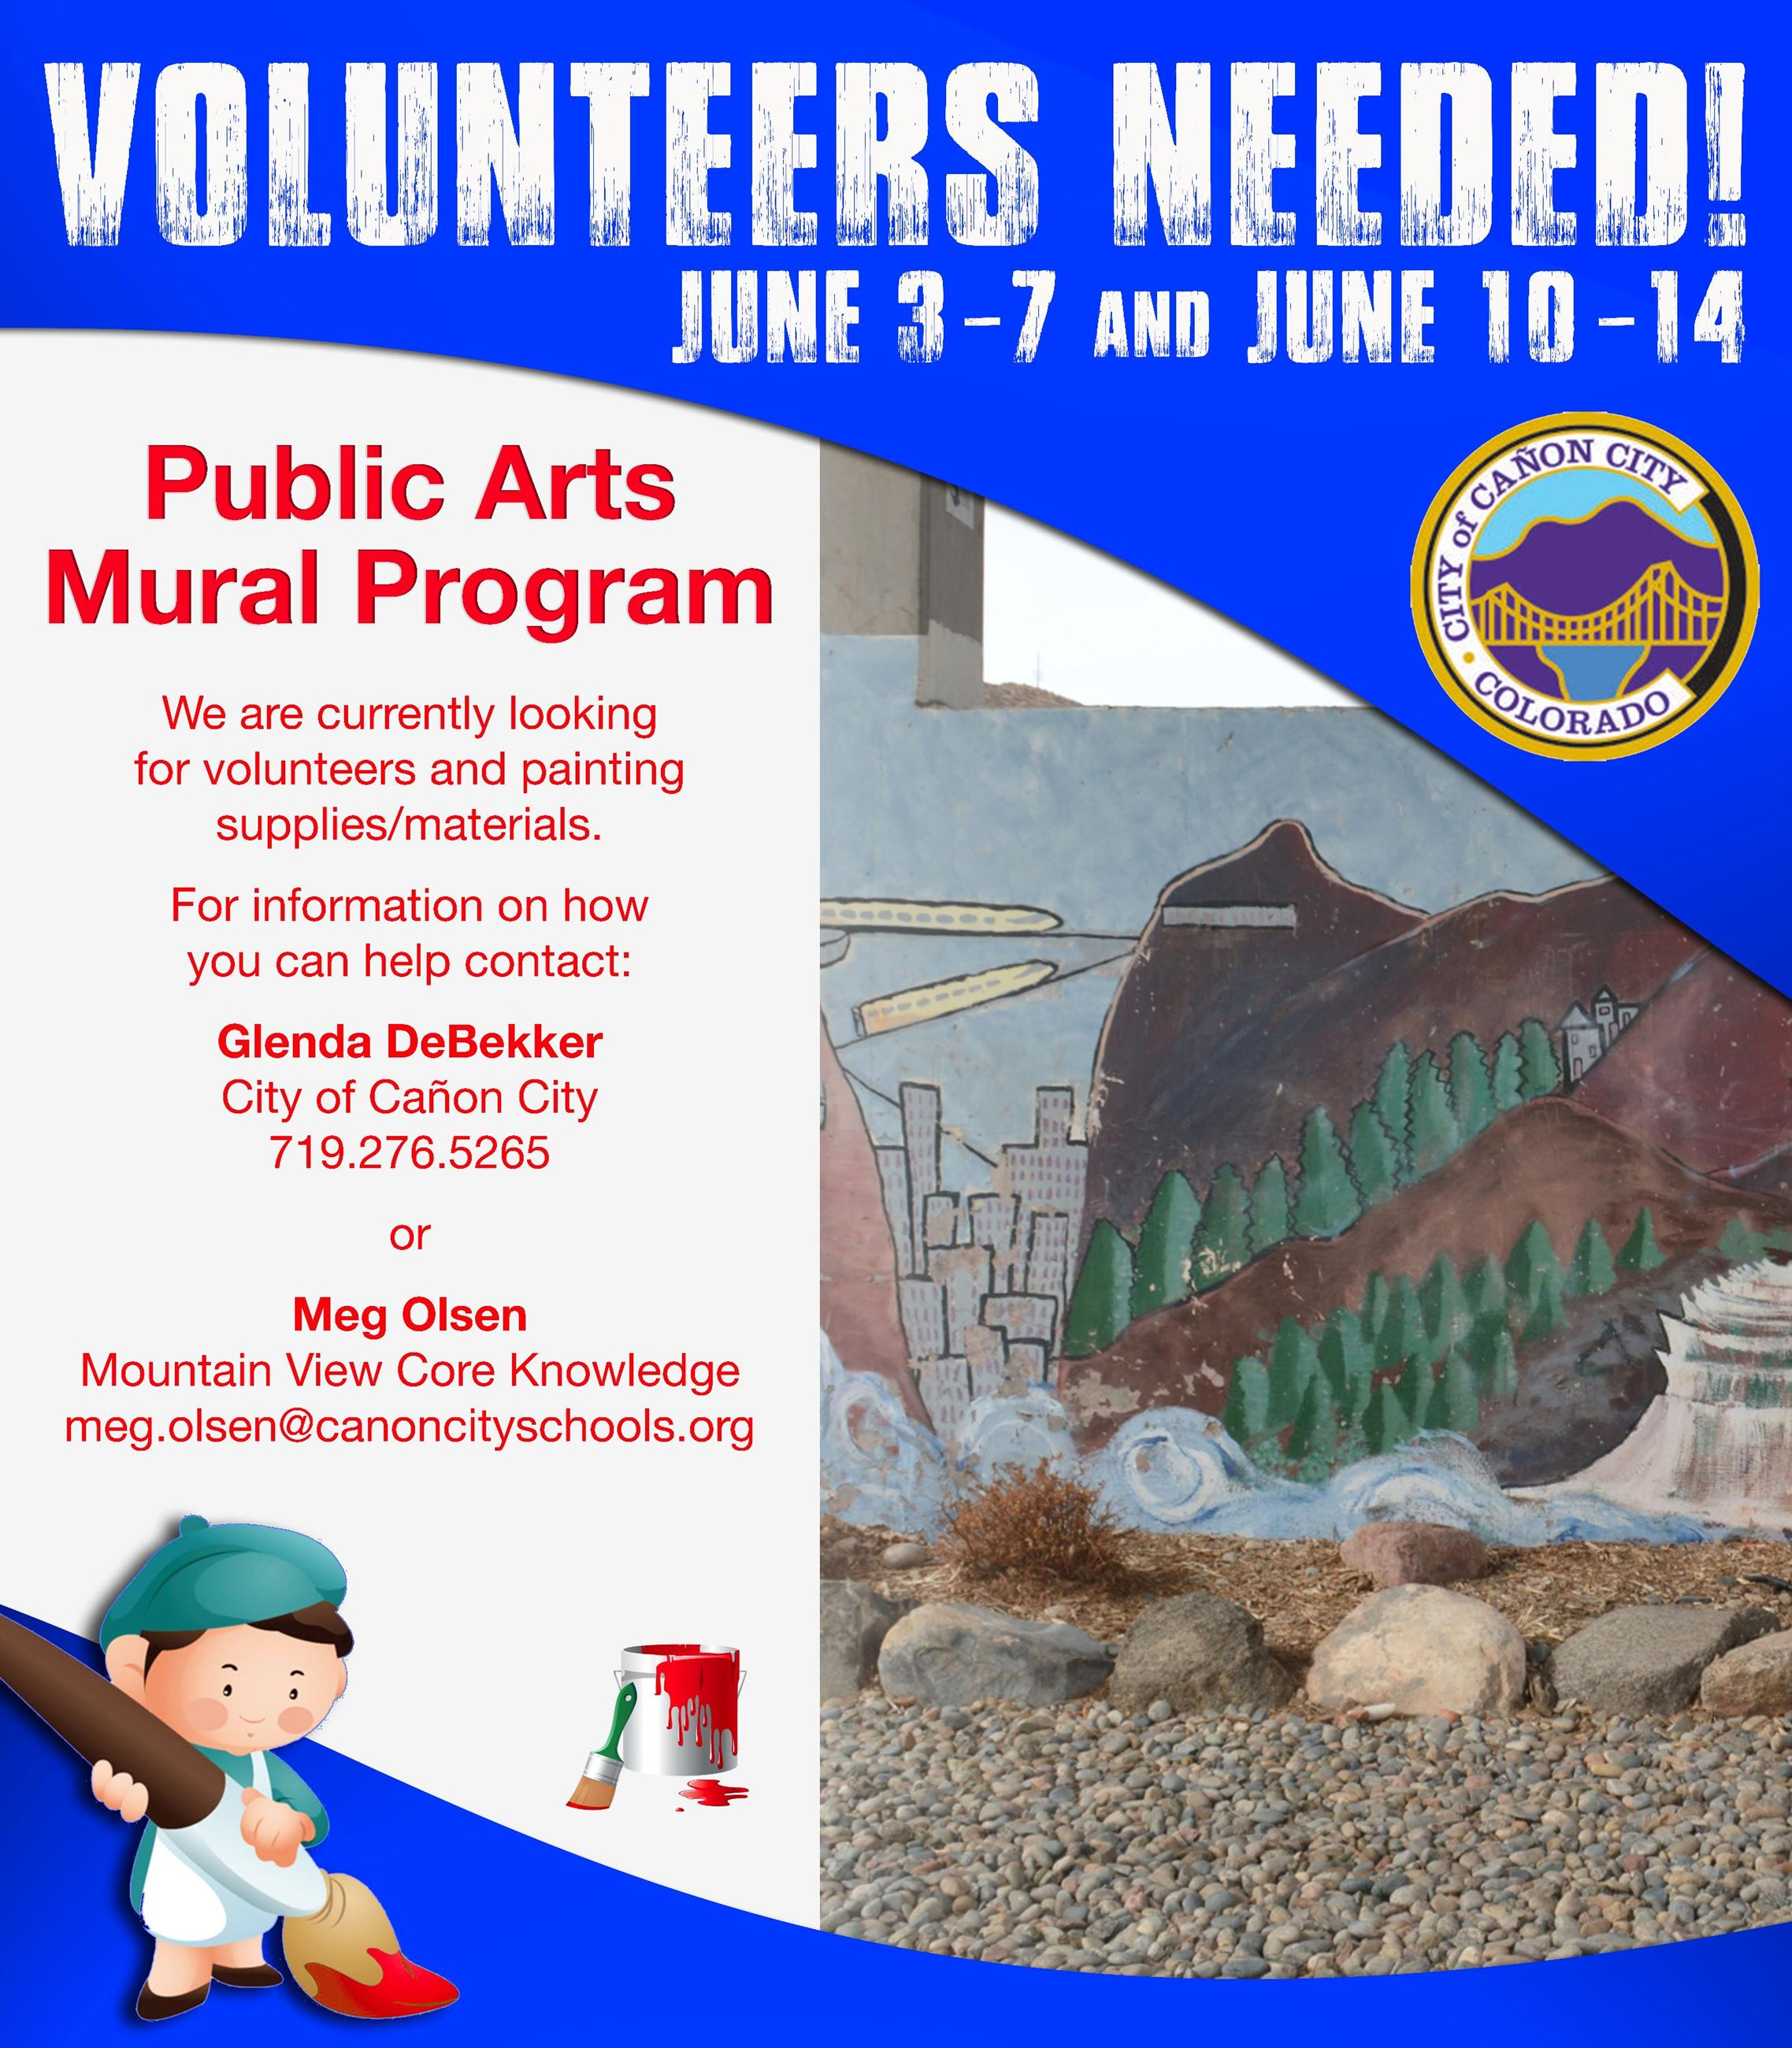 Volunteers Needed for the Public Arts Mural Program